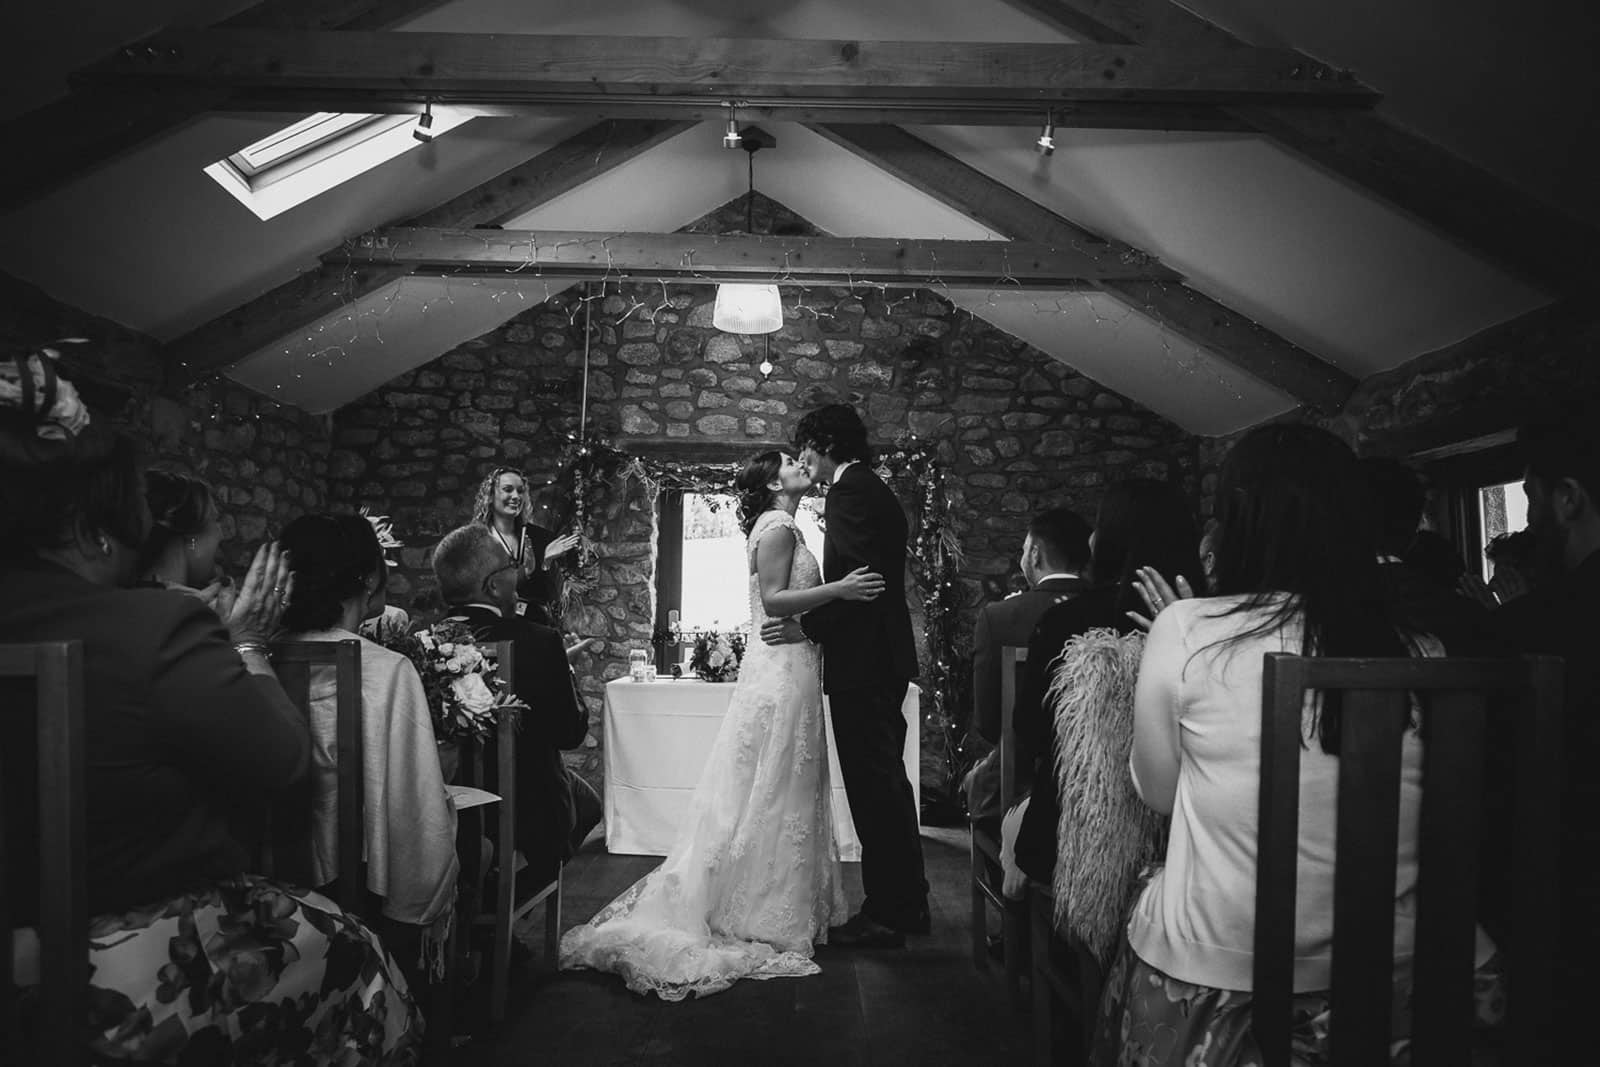 Wedding ceremony at Knightor Winery vineyard wedding venue in Cornwall, as featured on eeek! weddings